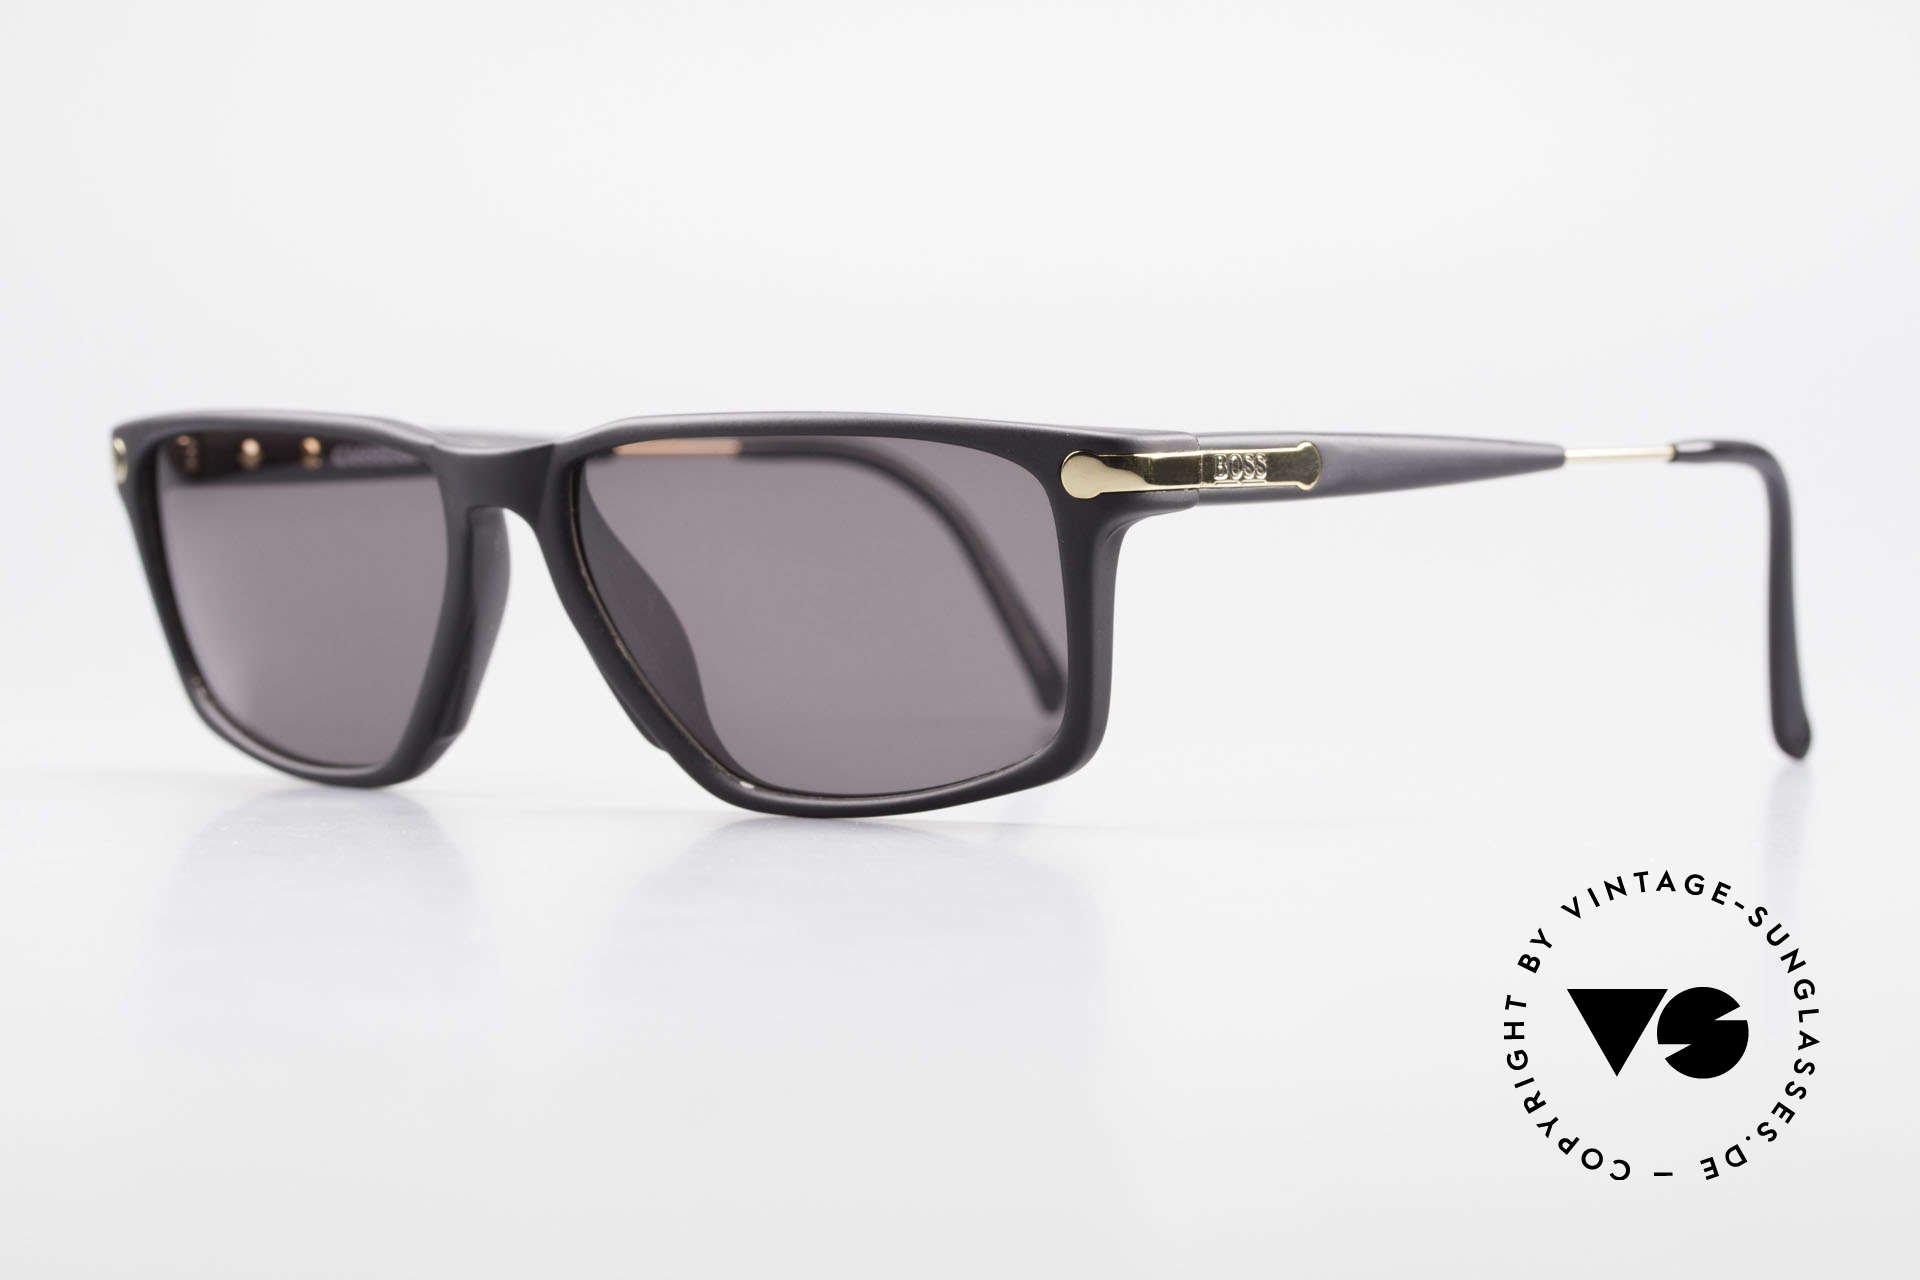 BOSS 5174 Square-Cut Vintage Sunglasses, high-end OPTYL material (lightweight & durable), Made for Men